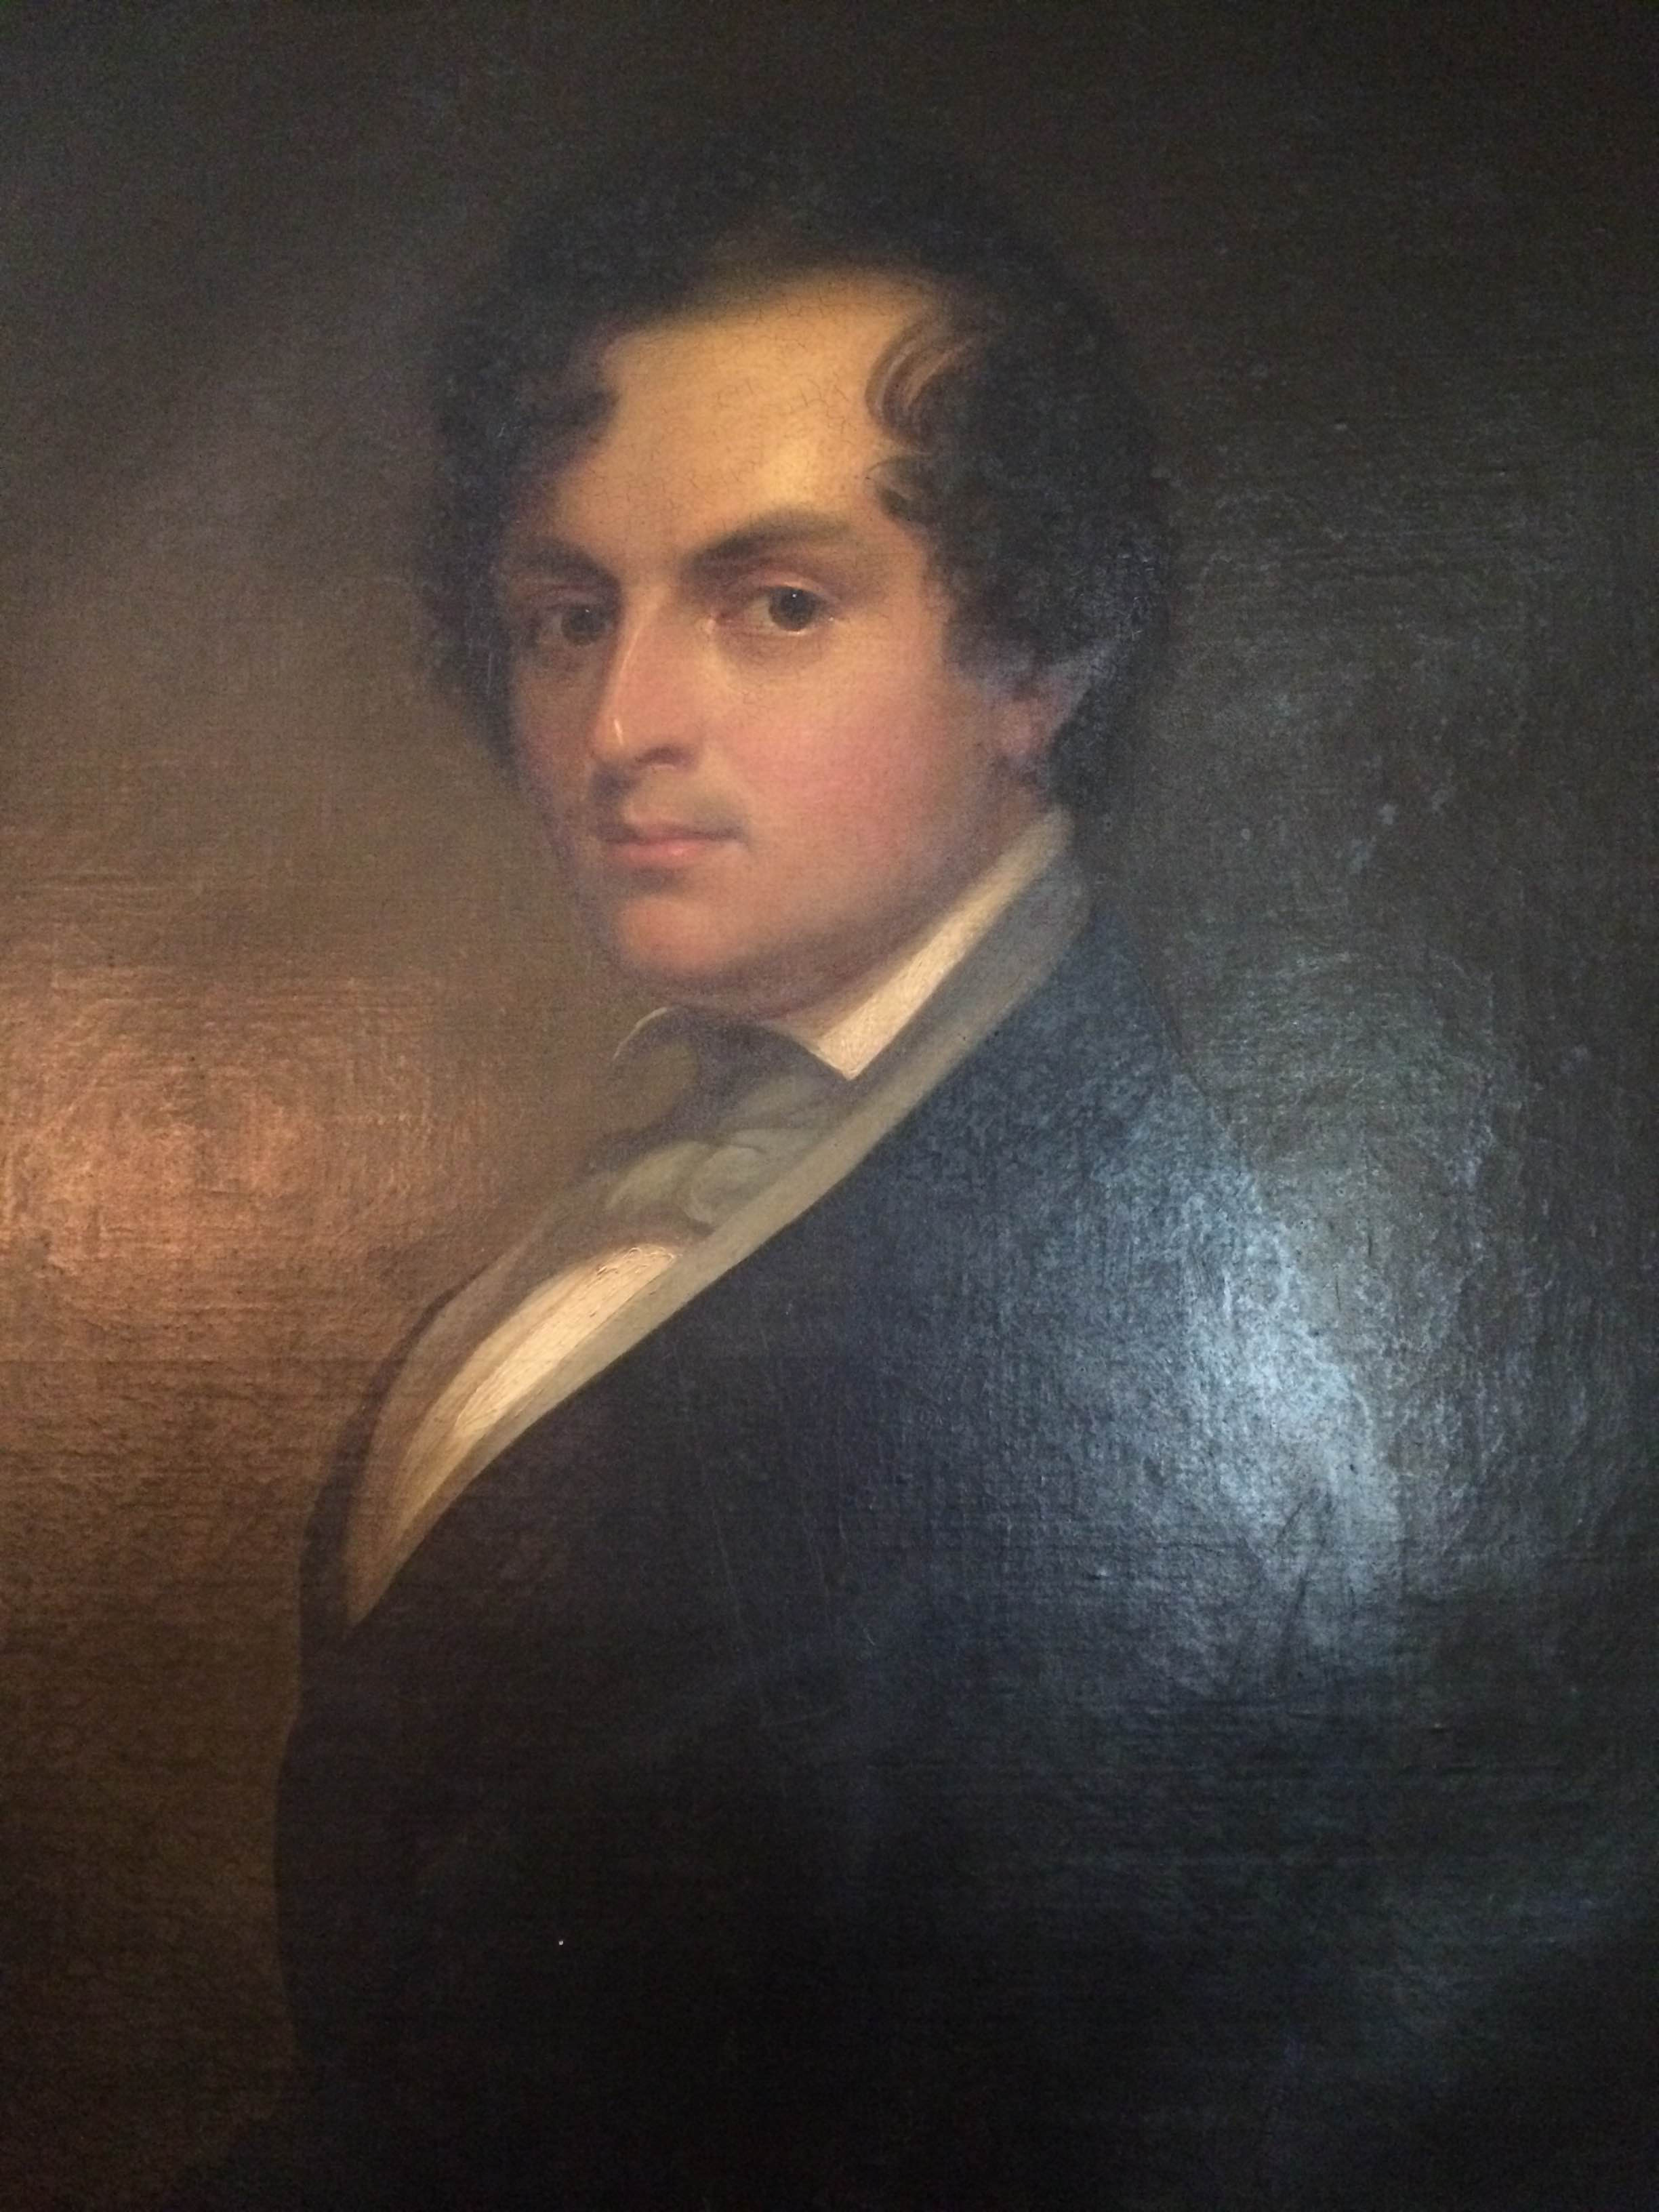 Portrait of Epes Sargent by Chester A. Harding dating from 1830-40.